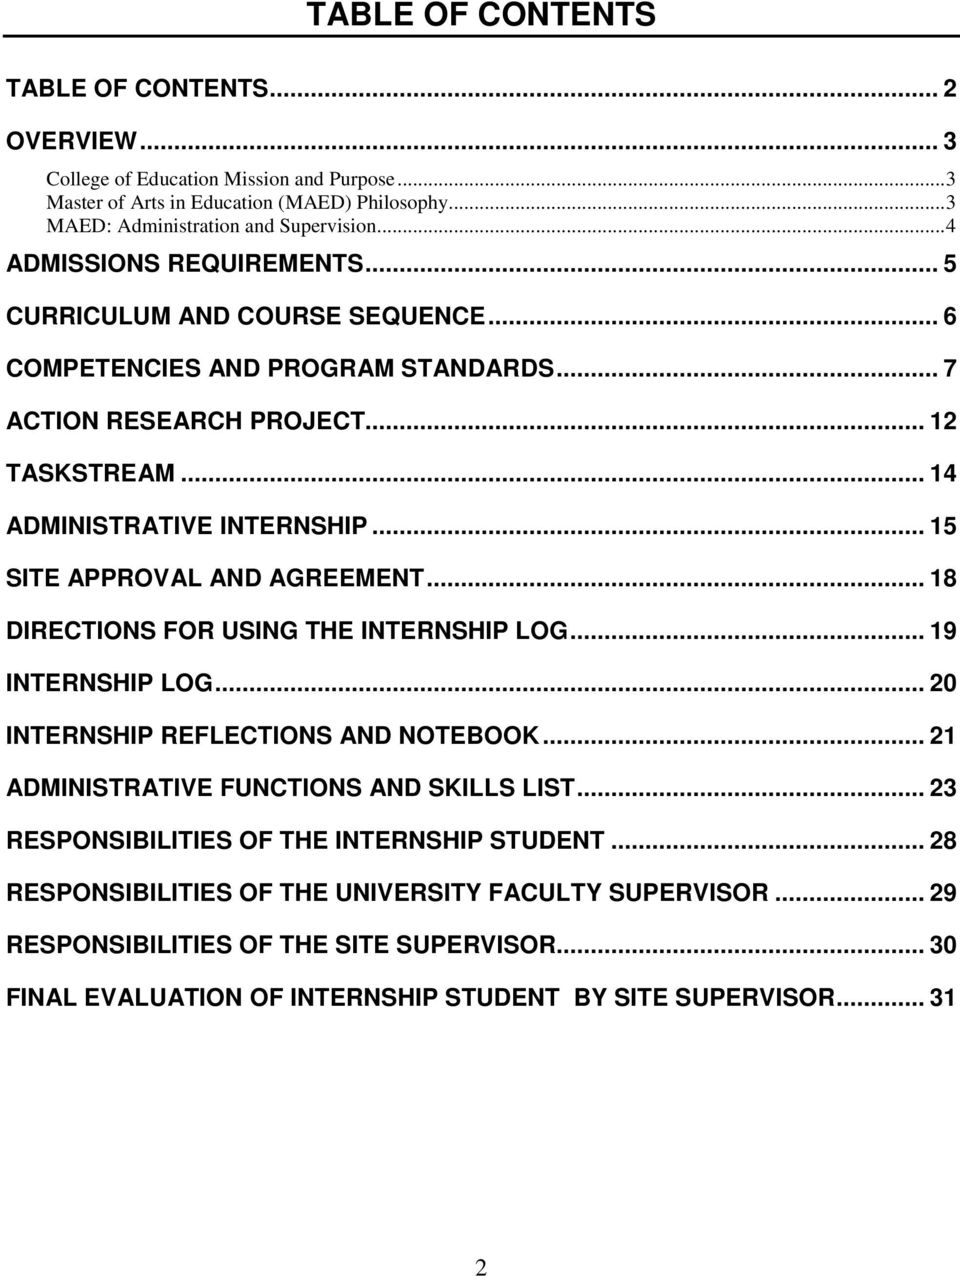 .. 15 SITE APPROVAL AND AGREEMENT... 18 DIRECTIONS FOR USING THE INTERNSHIP LOG... 19 INTERNSHIP LOG... 20 INTERNSHIP REFLECTIONS AND NOTEBOOK... 21 ADMINISTRATIVE FUNCTIONS AND SKILLS LIST.